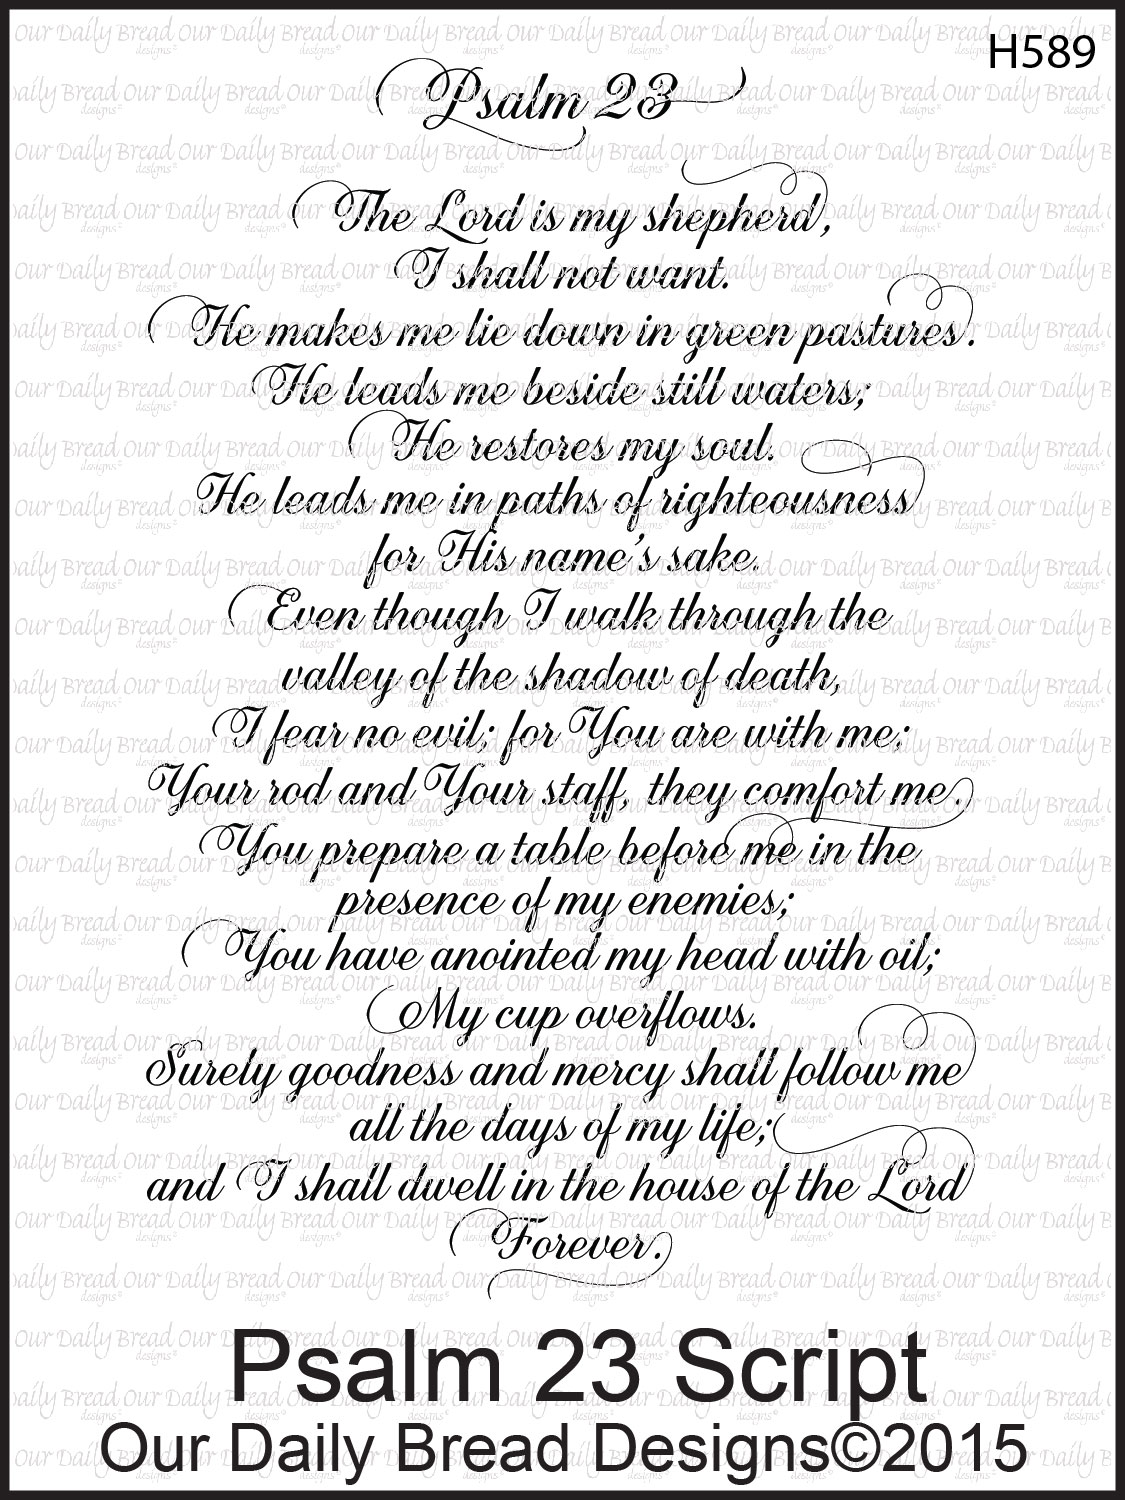 10 Great Prayers from the Psalms